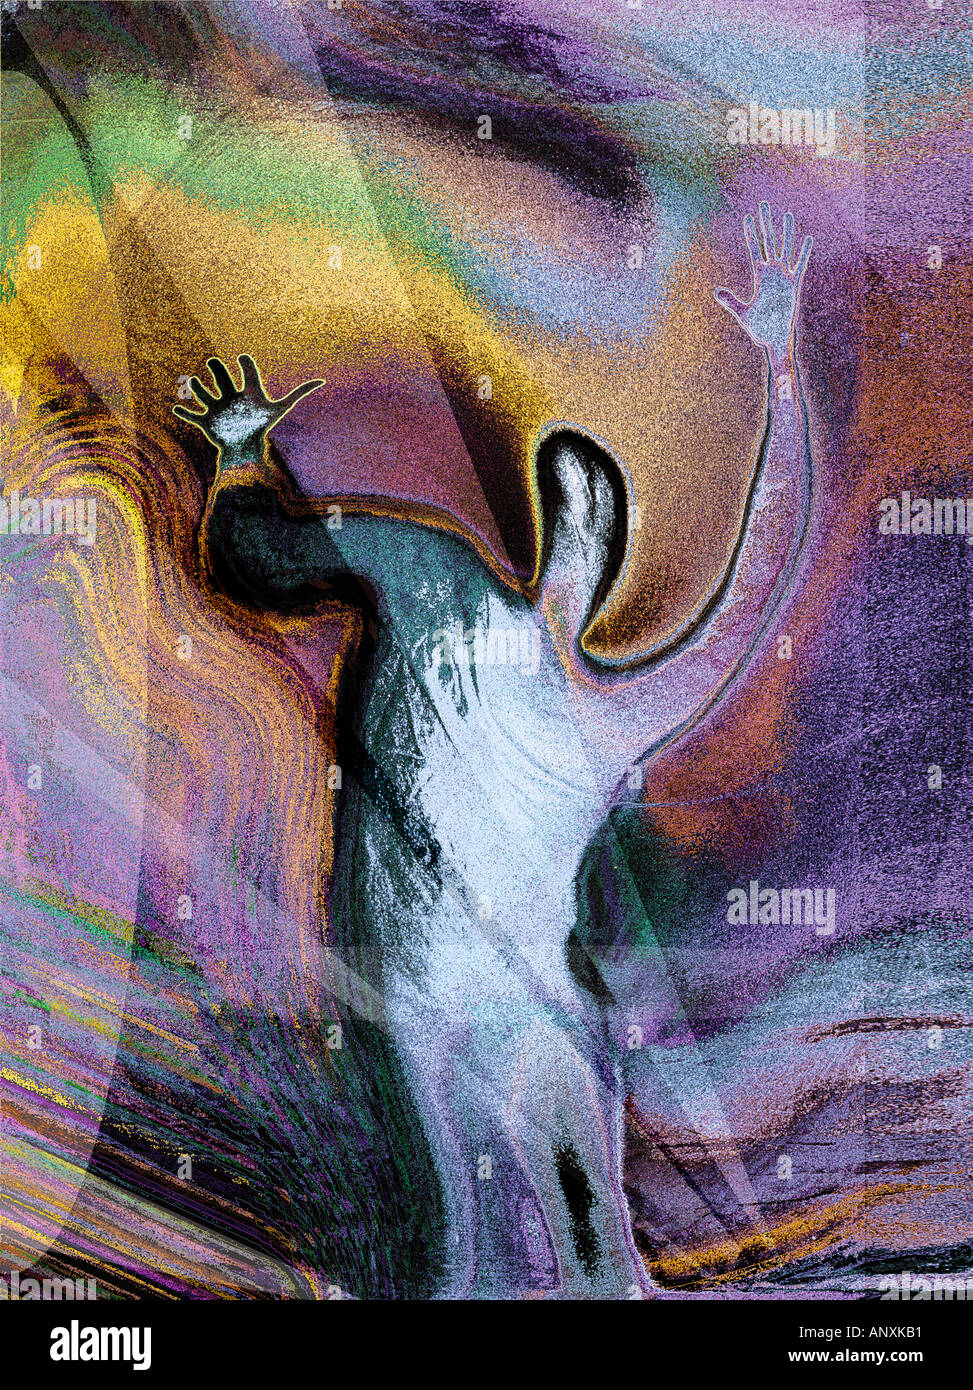 person in torment swirling around colourful background abstract concept - Stock Image